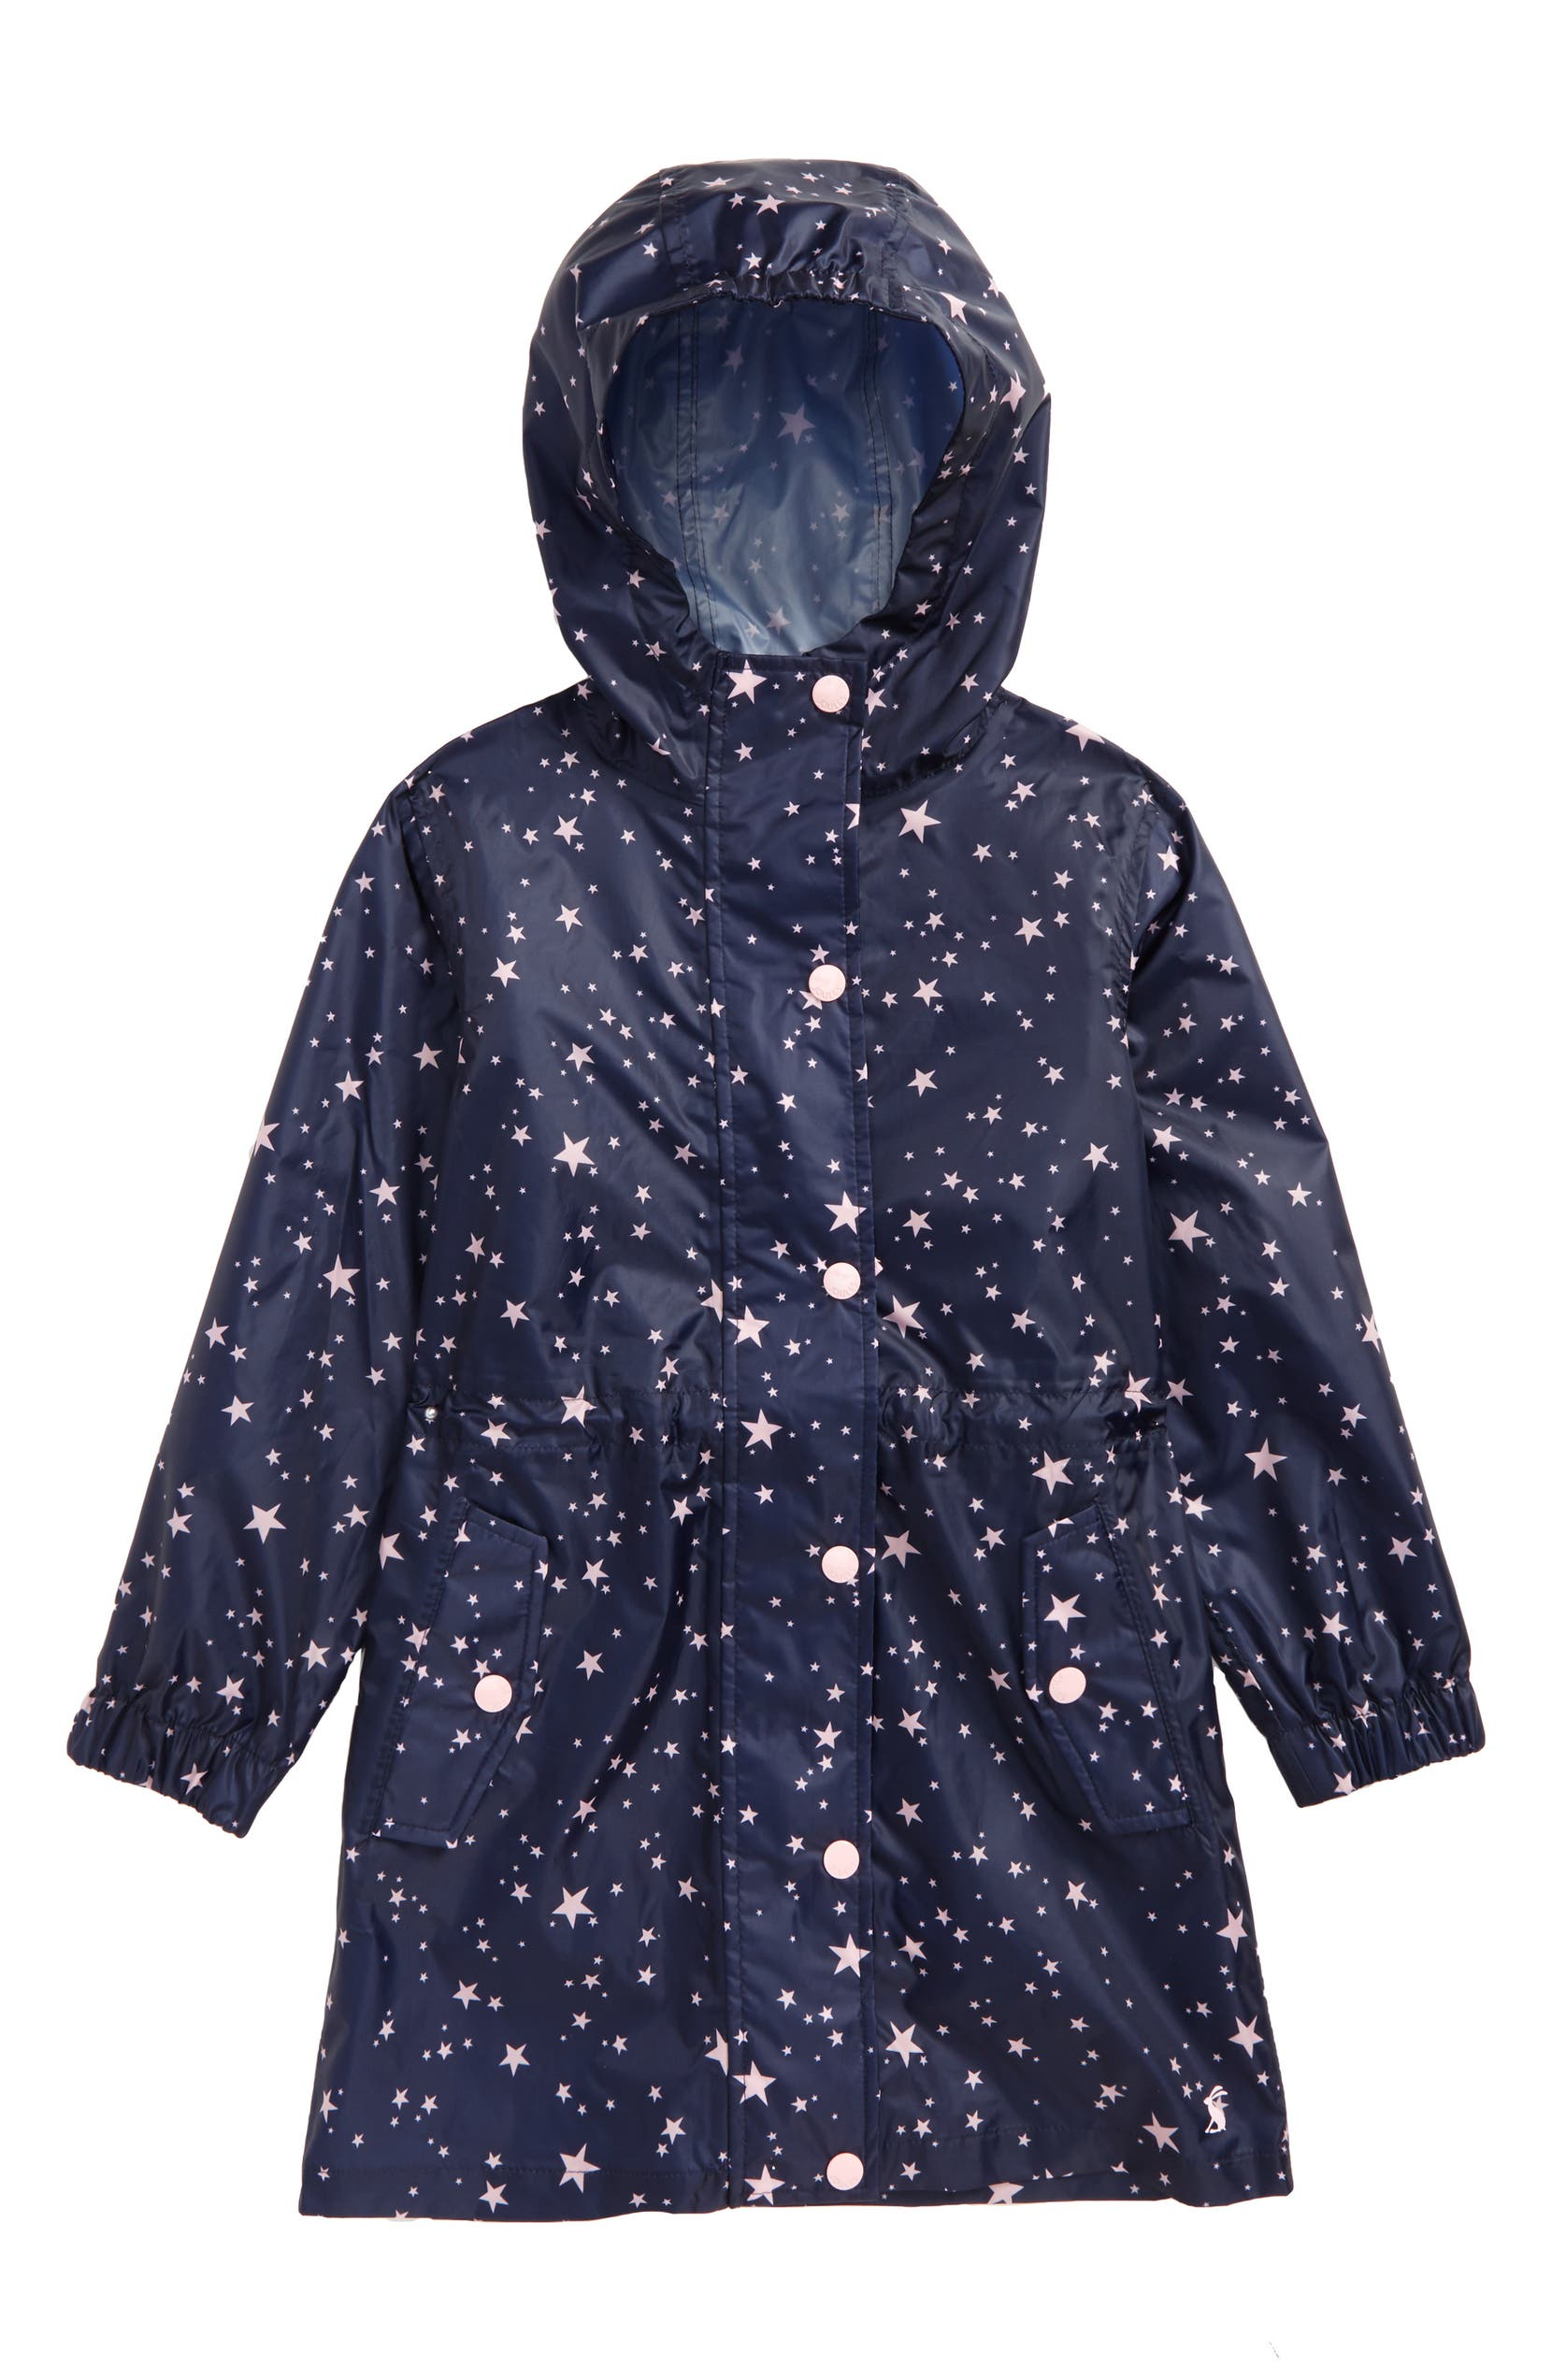 5396e96993a4 Joules Print Packaway Rain Coat (Toddler Girls